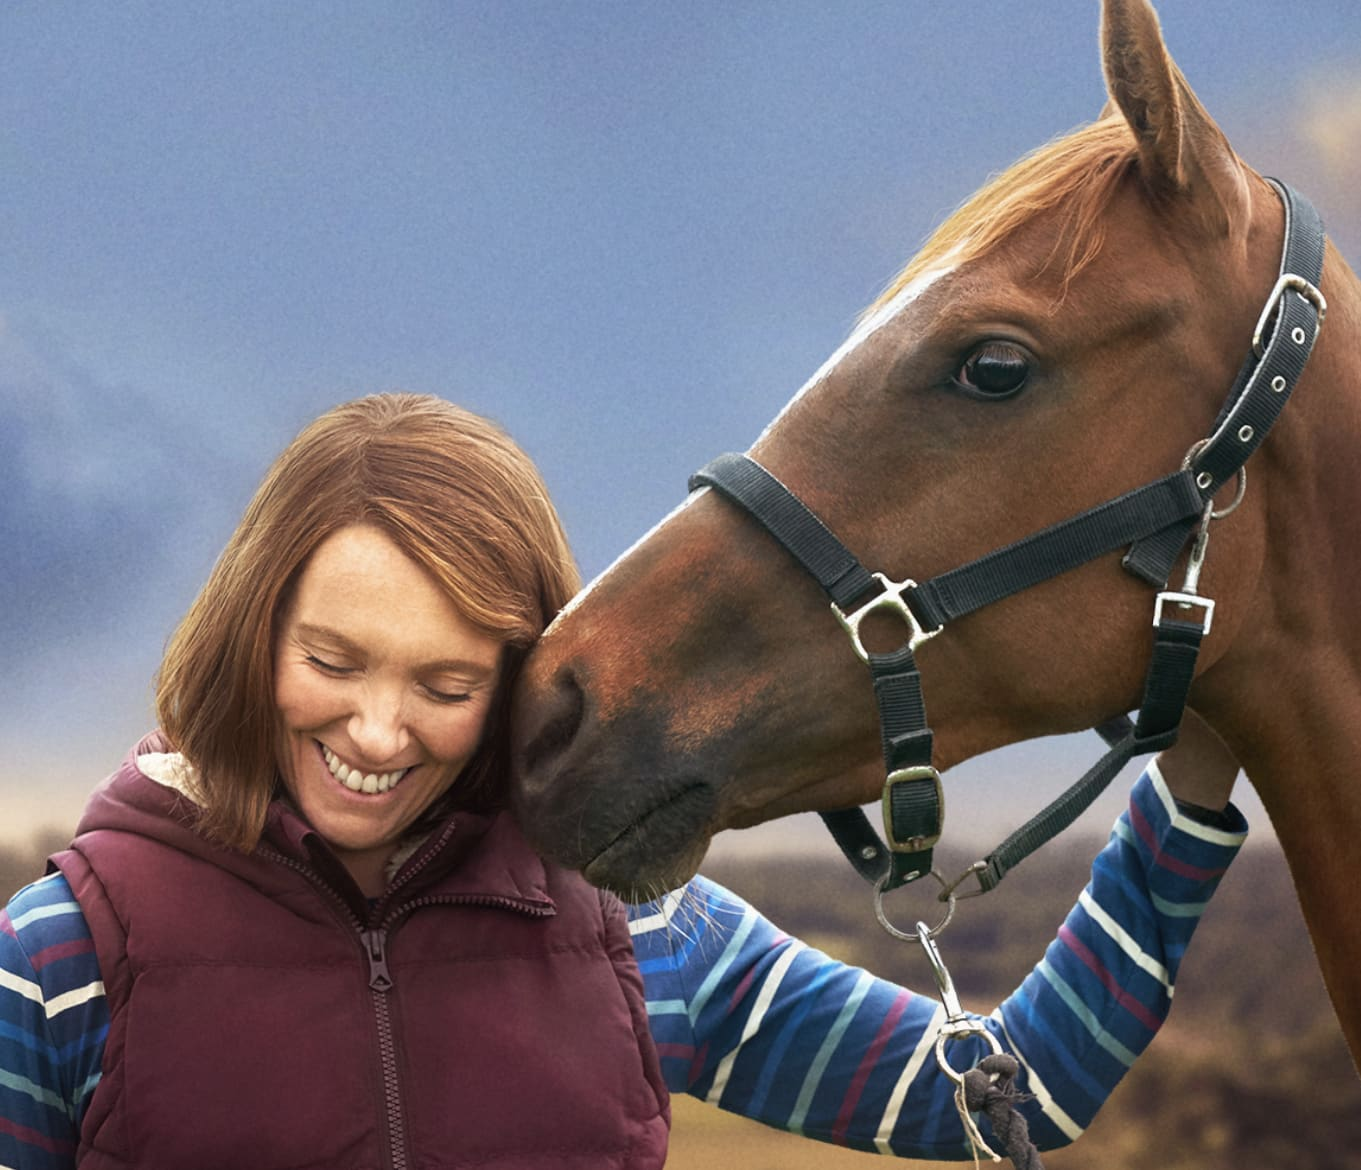 Toni Colette being nuzzled by a horse, from Dream Horse